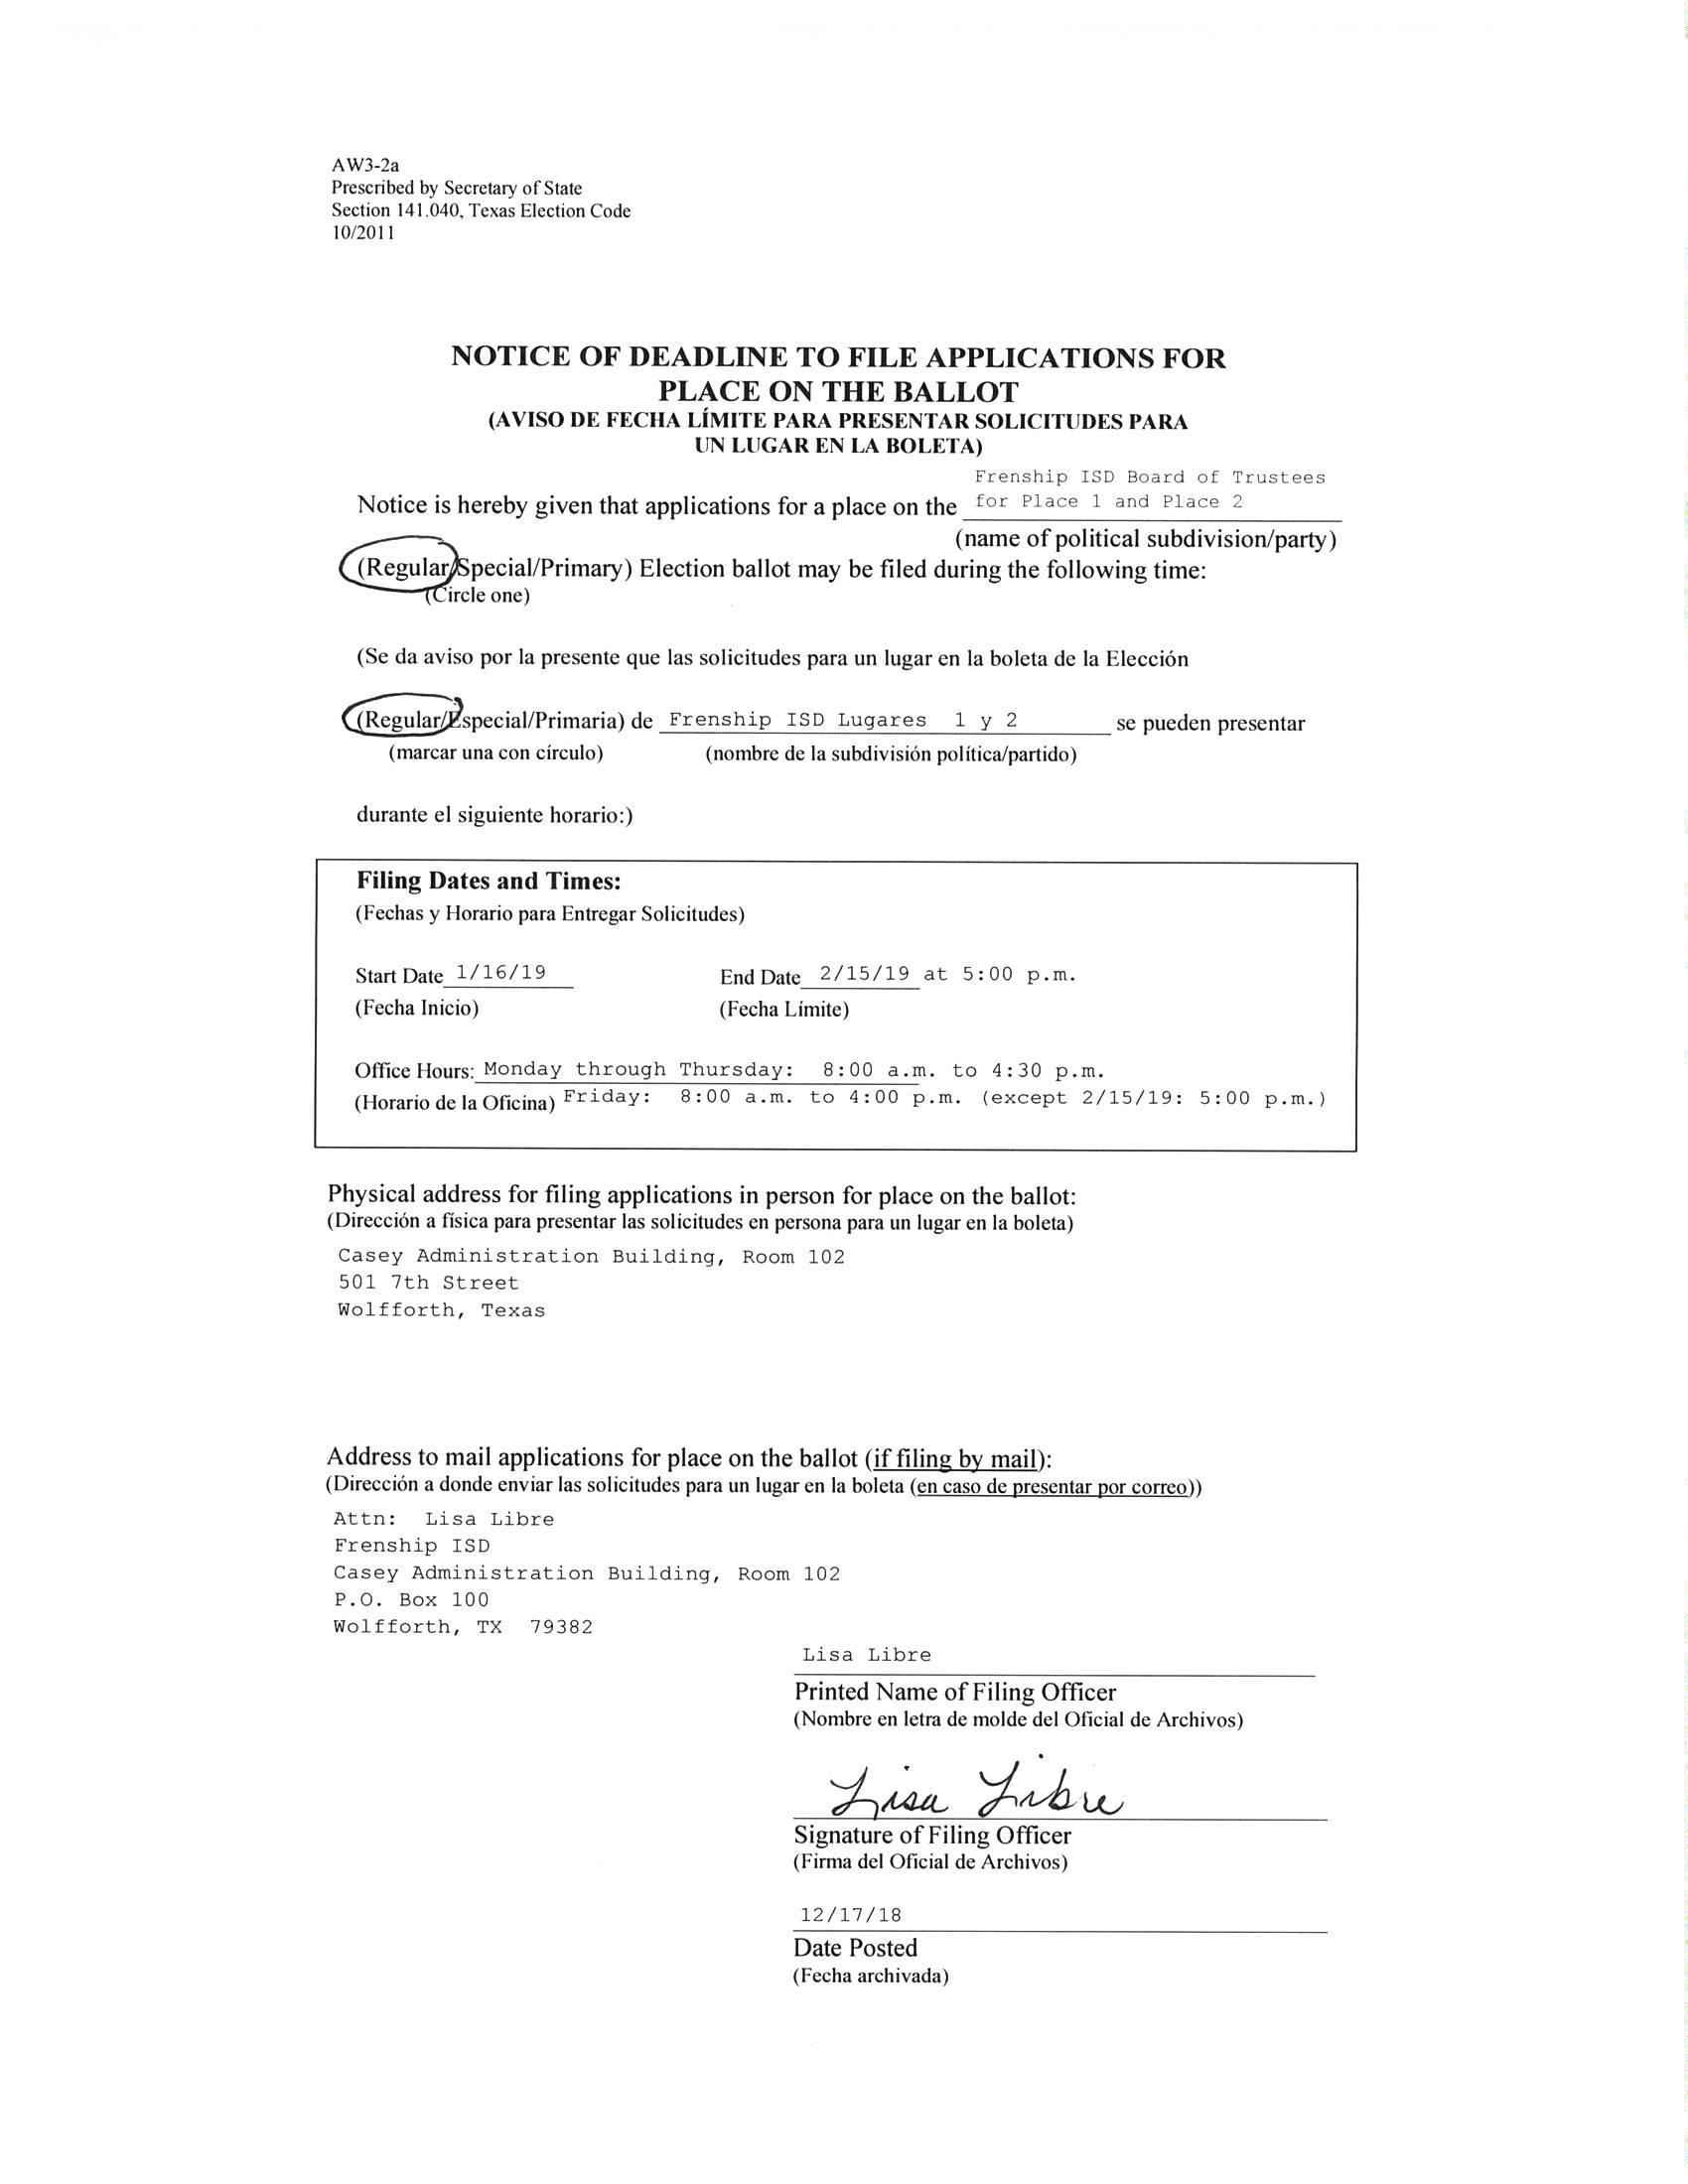 Notice of Deadline to File Application